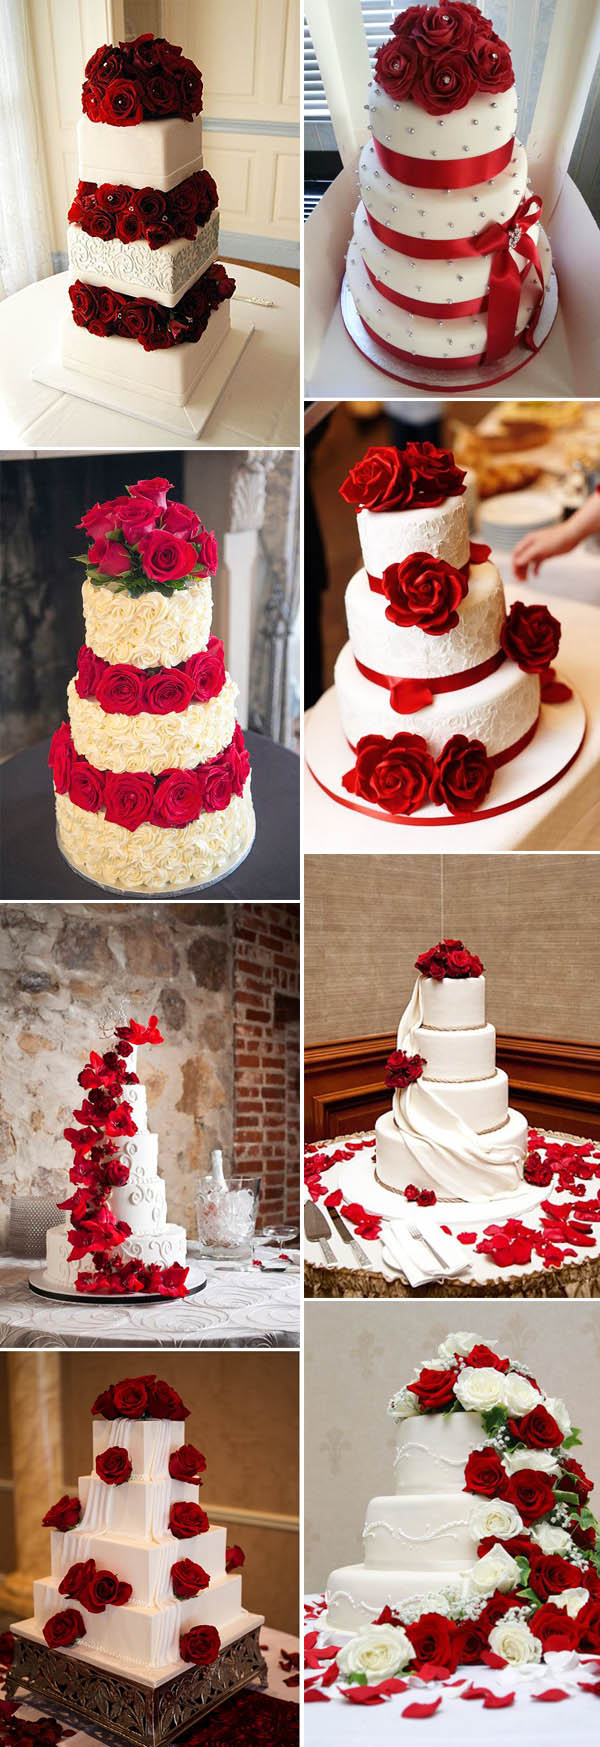 40 Inspirational Classic Red and White Wedding Ideas     classic red and white wedding cakes